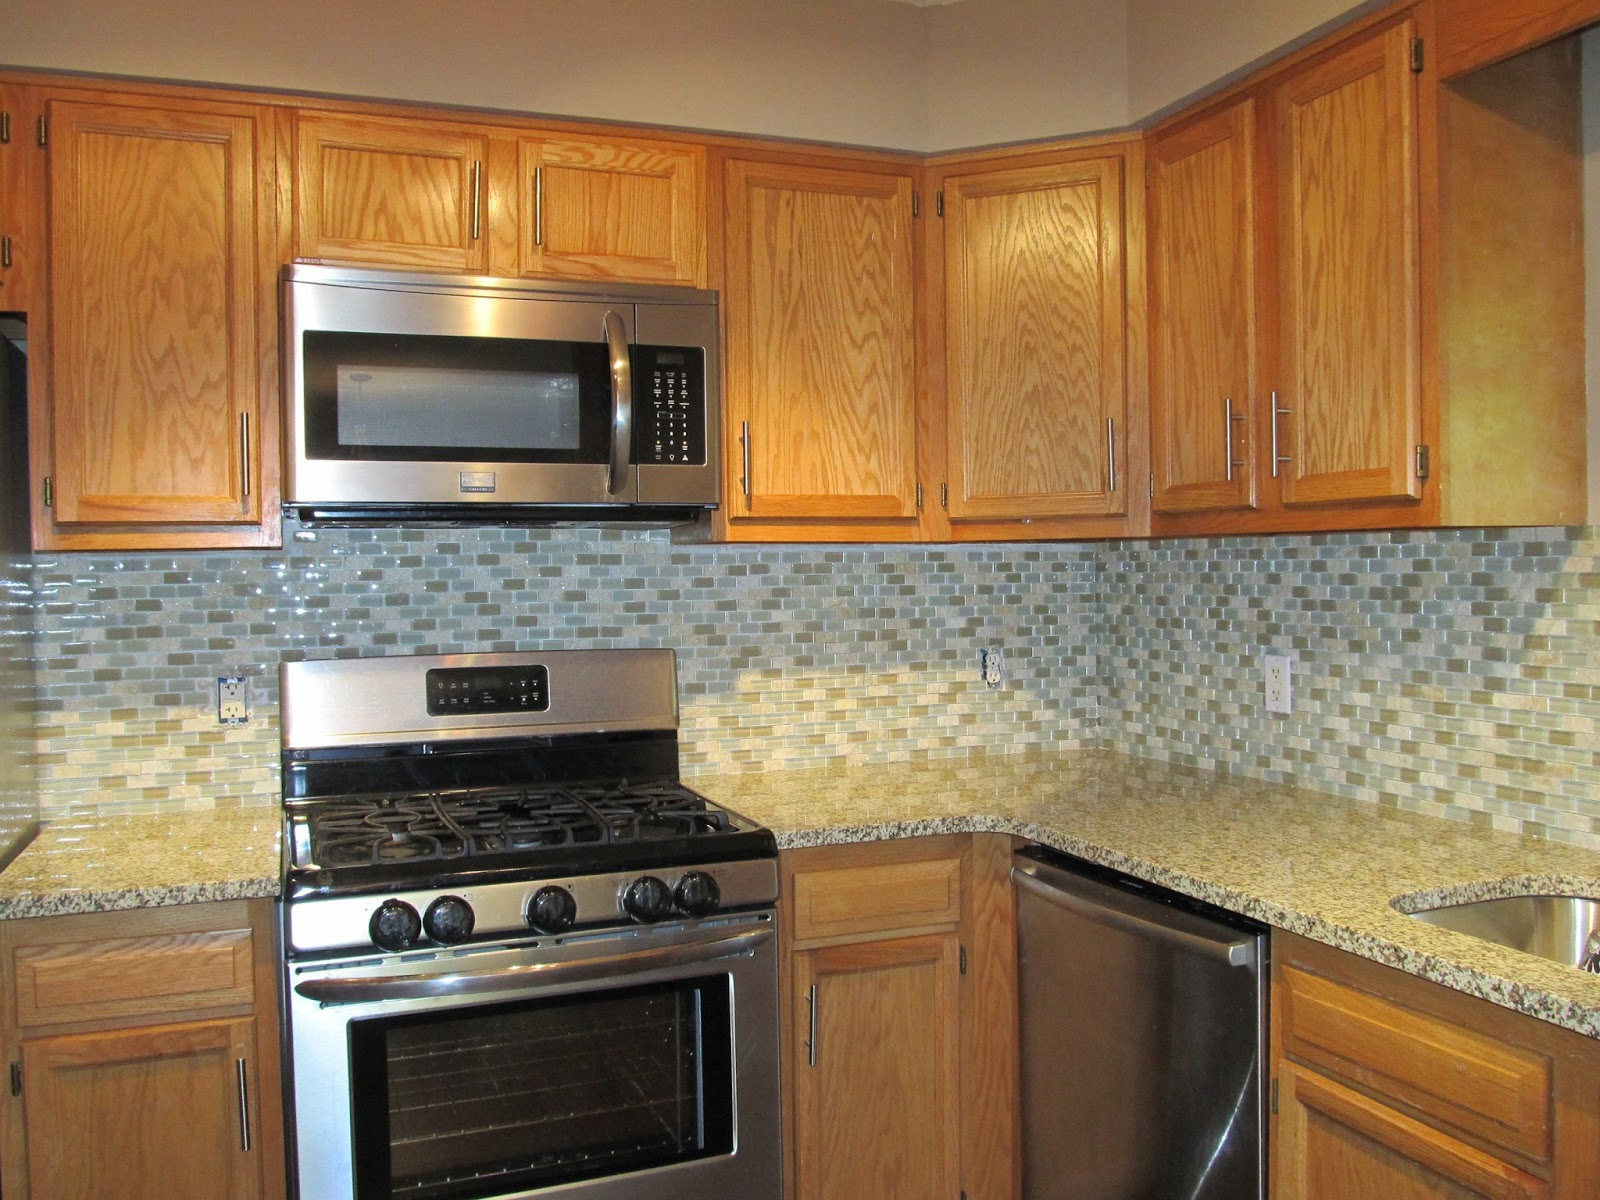 tile exciting white glass for here a granite and ideas color walls too go countertop kitchen countertops buy to size cherry cabinets what is busyj of backsplash black with full busy